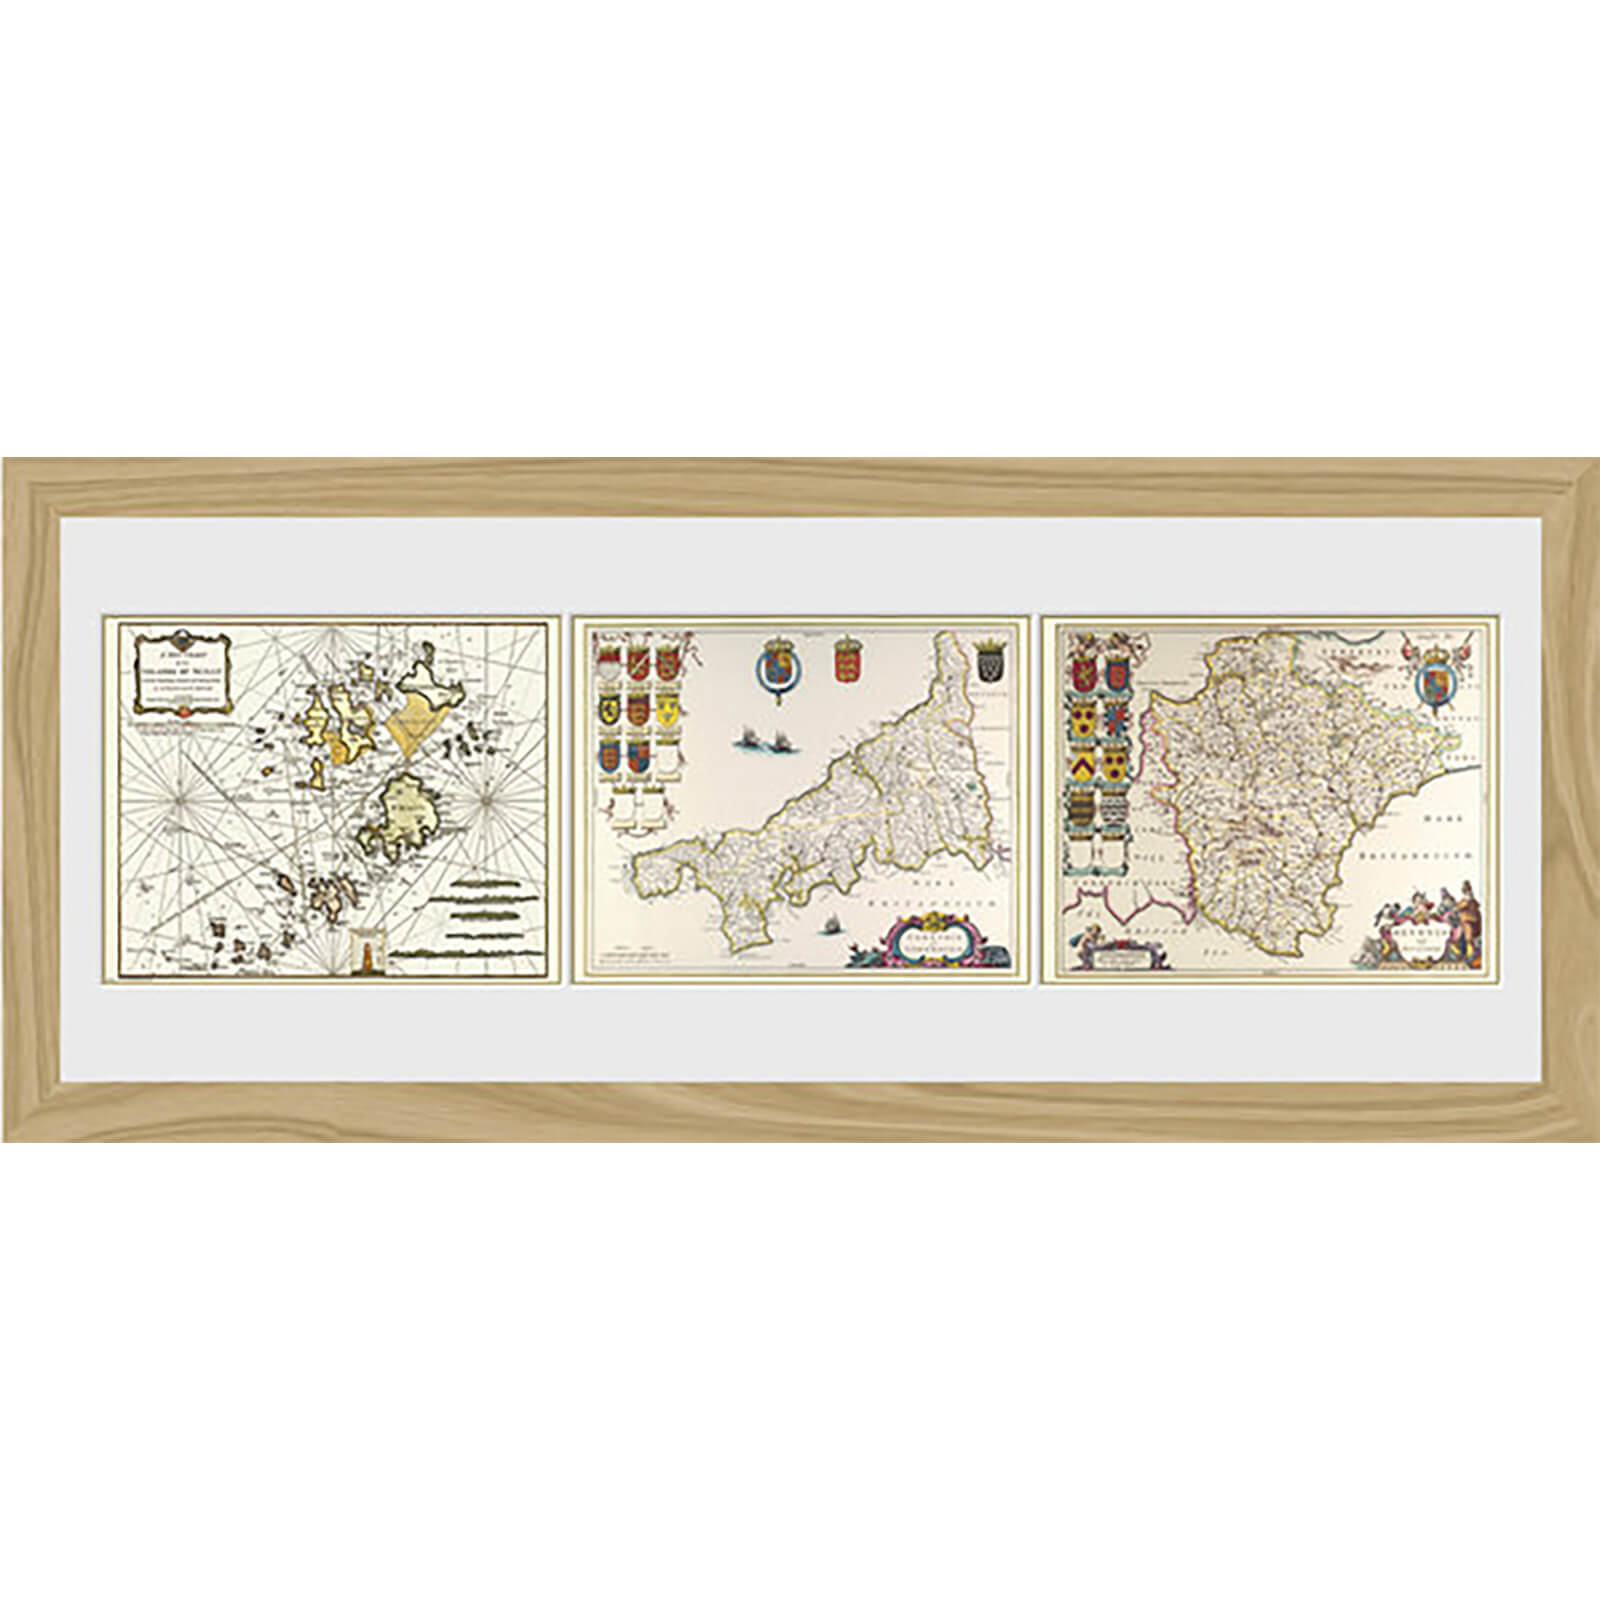 "Maps Triptych - 30"""" x 12"""" Framed Photographic"